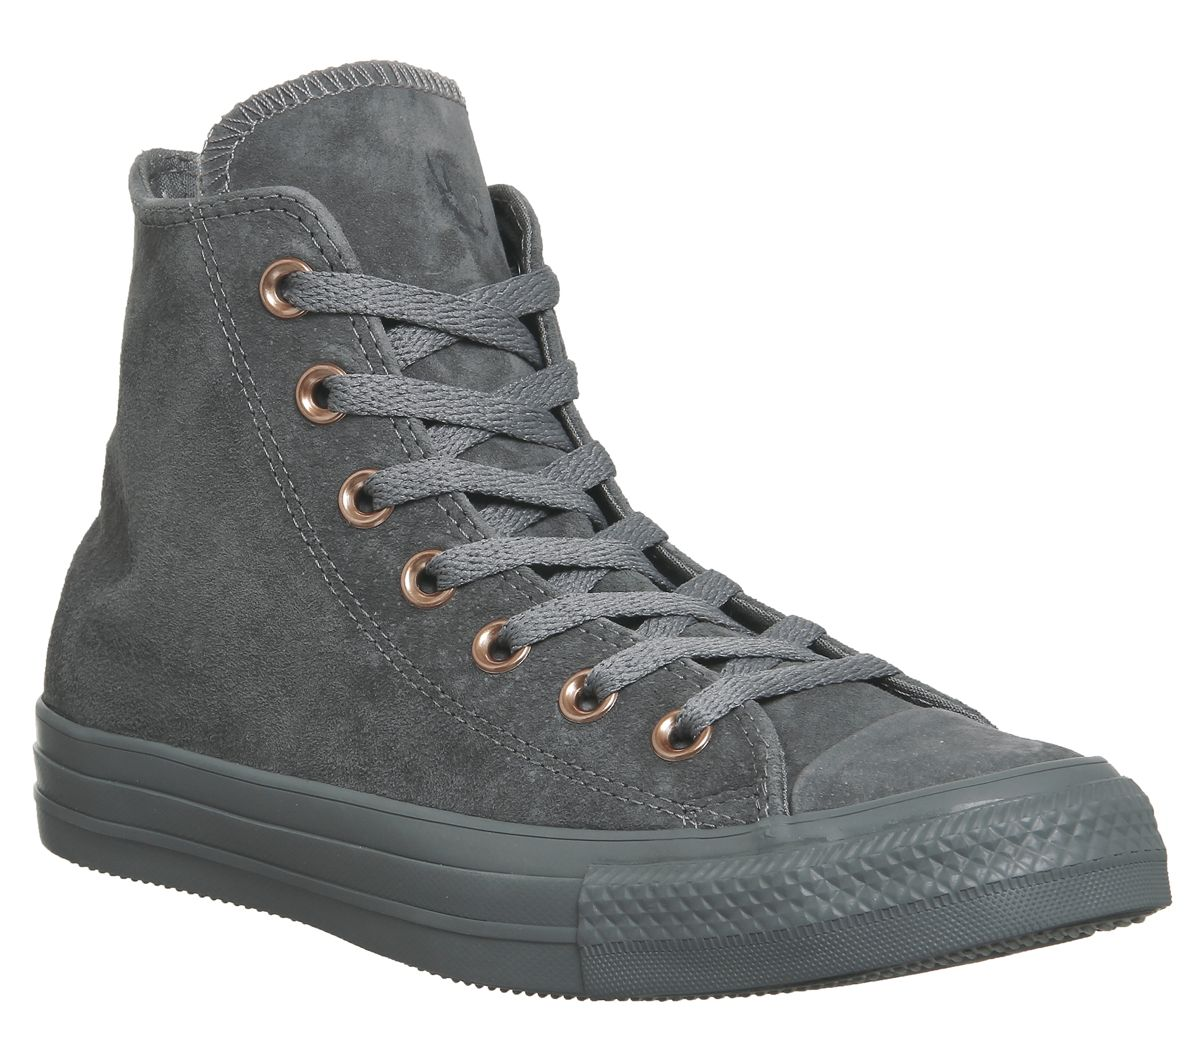 Converse Converse All Star Hi Leather Trainers, Grey